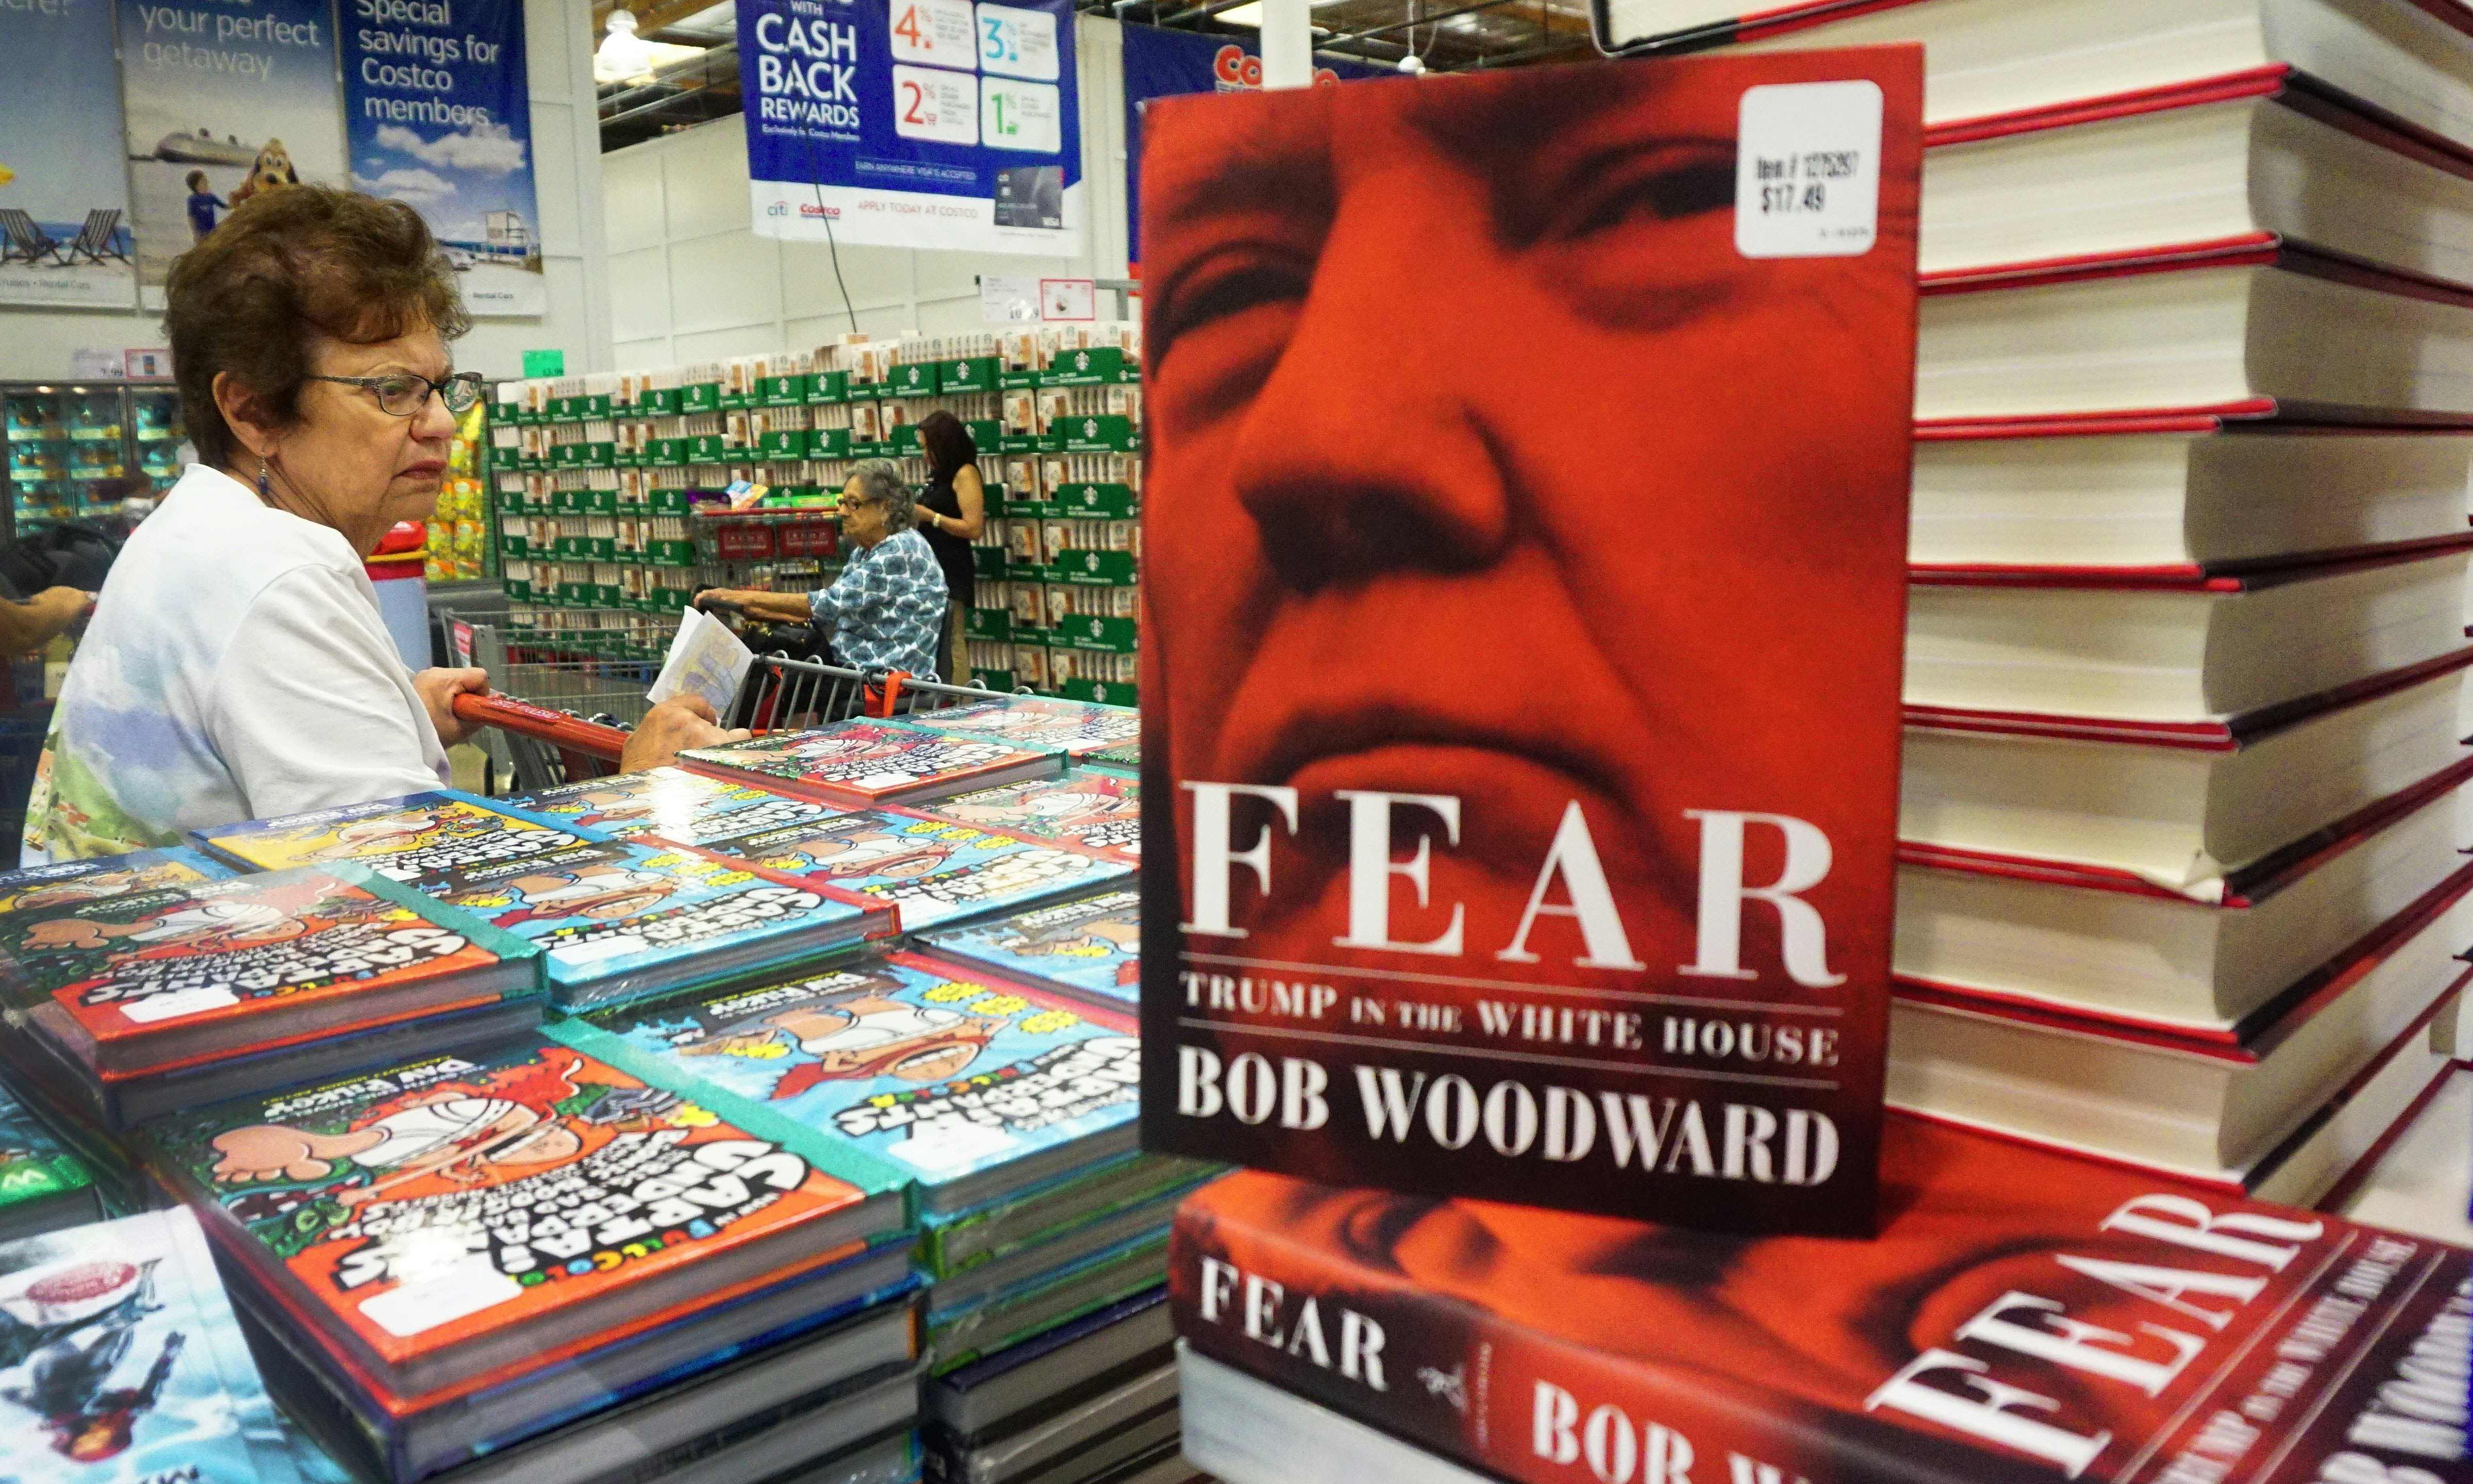 Bob Woodward's Fear sells more than 750,000 in first day